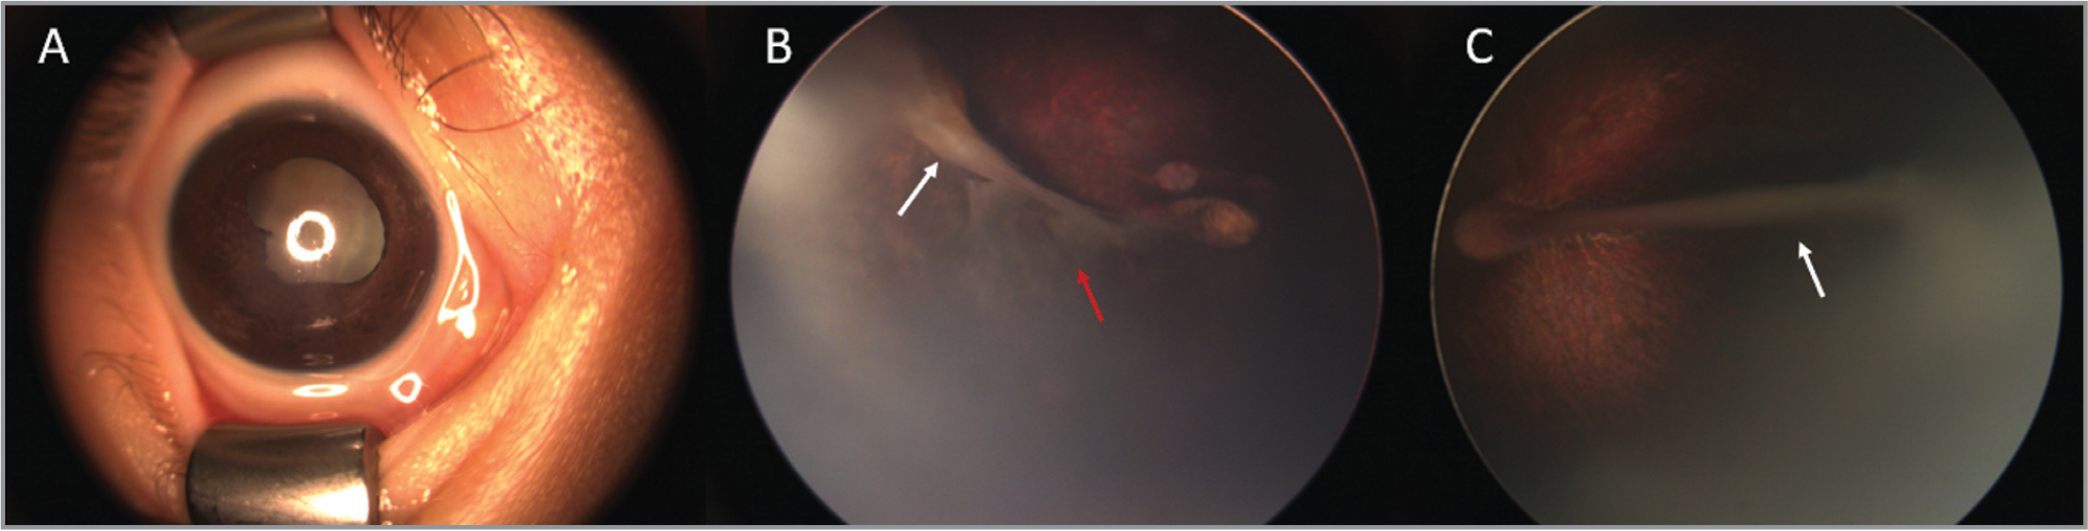 External photograph and fundus photographs of a 5-month-old girl with bilateral combined persistent fetal vasculature (Case 1), preoperatively. Focal corneal opacity with prominent cataract formation was observed (A). A large stalk (white arrow) extending from the optic nerve to the posterior lens capsule with local retinal traction and macular involvement (red arrow) in the right eye (B). Similarly, a retrolental stalk (white arrow) was also observed in the left eye, with minimal retinal traction (C).